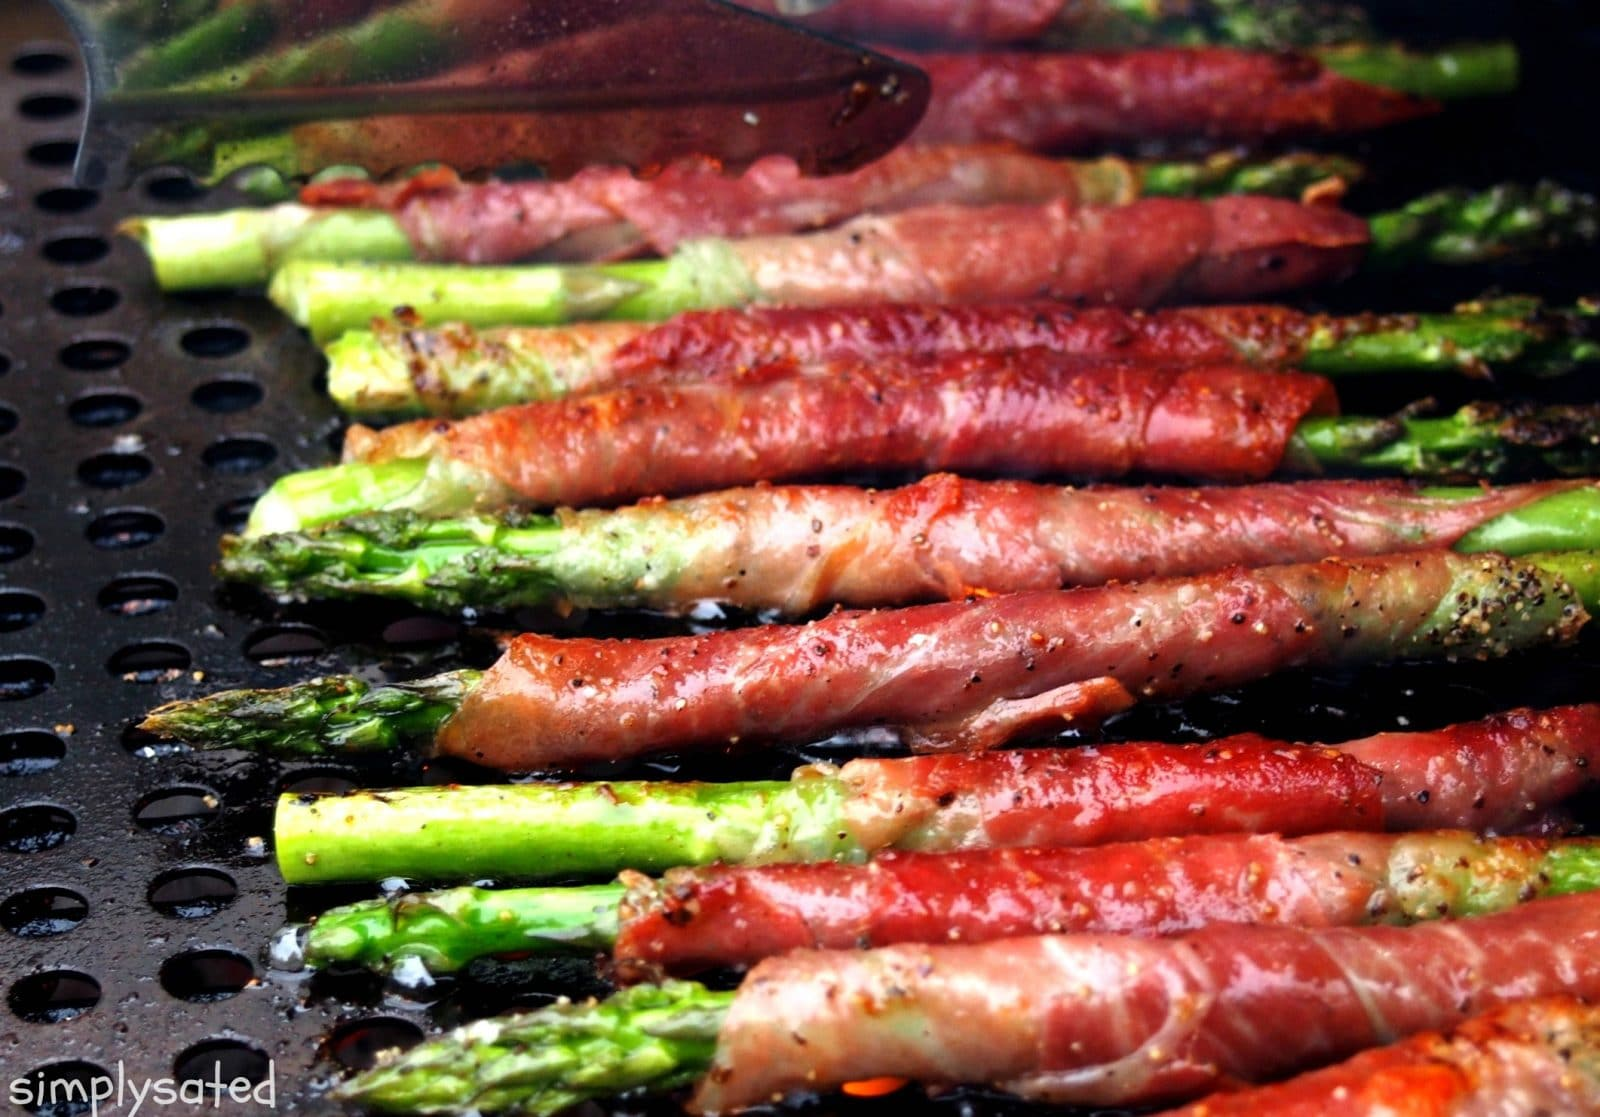 Grilled Asparagus with Prosciutto - simple & scrumptious. Fresh asparagus wrapped with prosciutto then grilled to perfection.